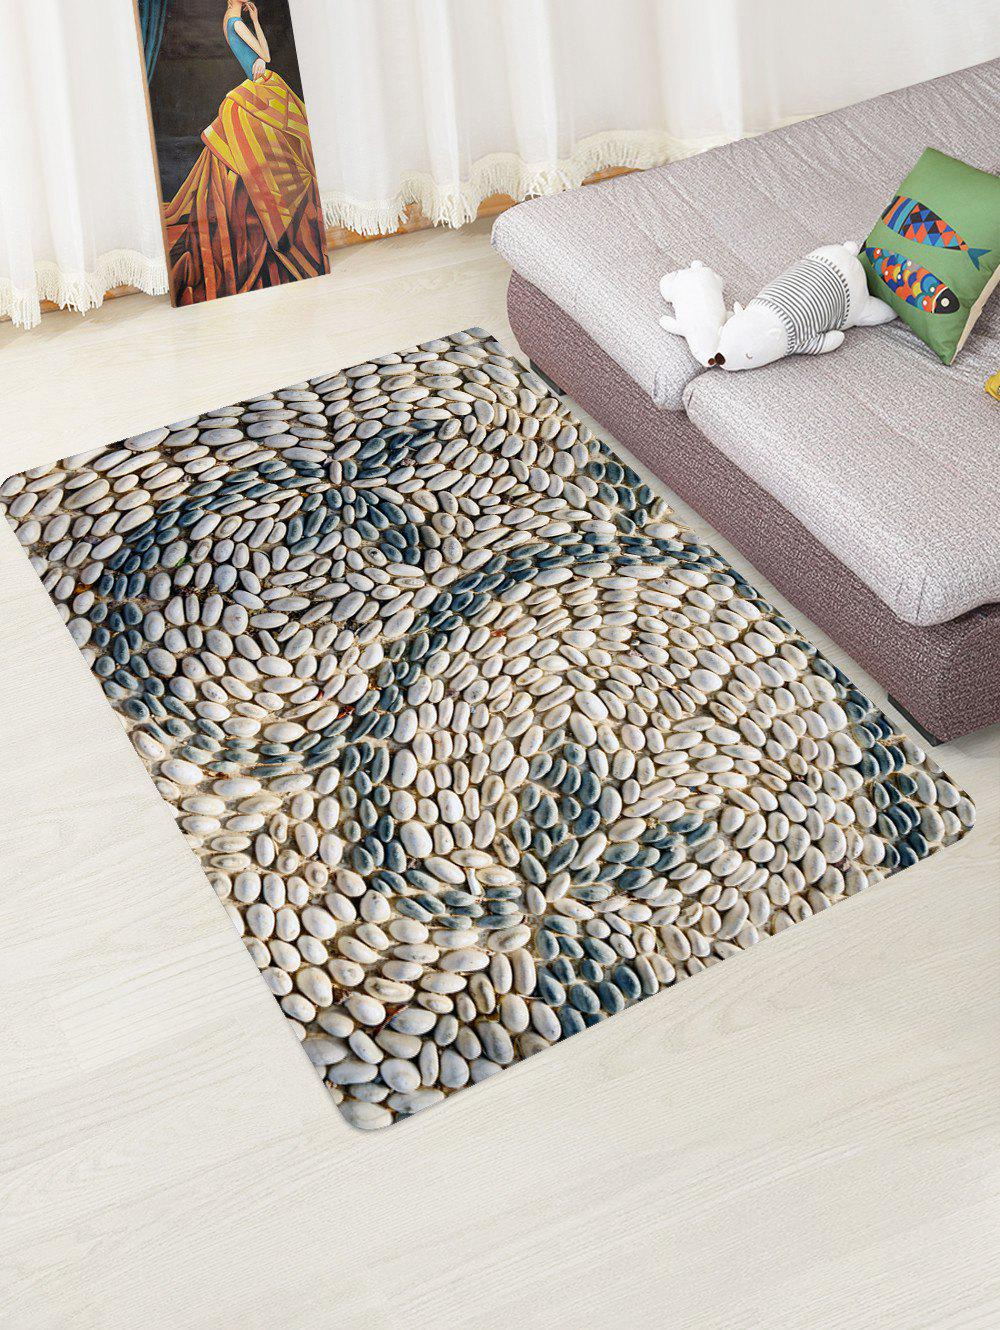 Bohemian Sun Moon Face Home Floor Carpet Non Skid Door Bathroom Mat Decor Rugs Bath Home Garden